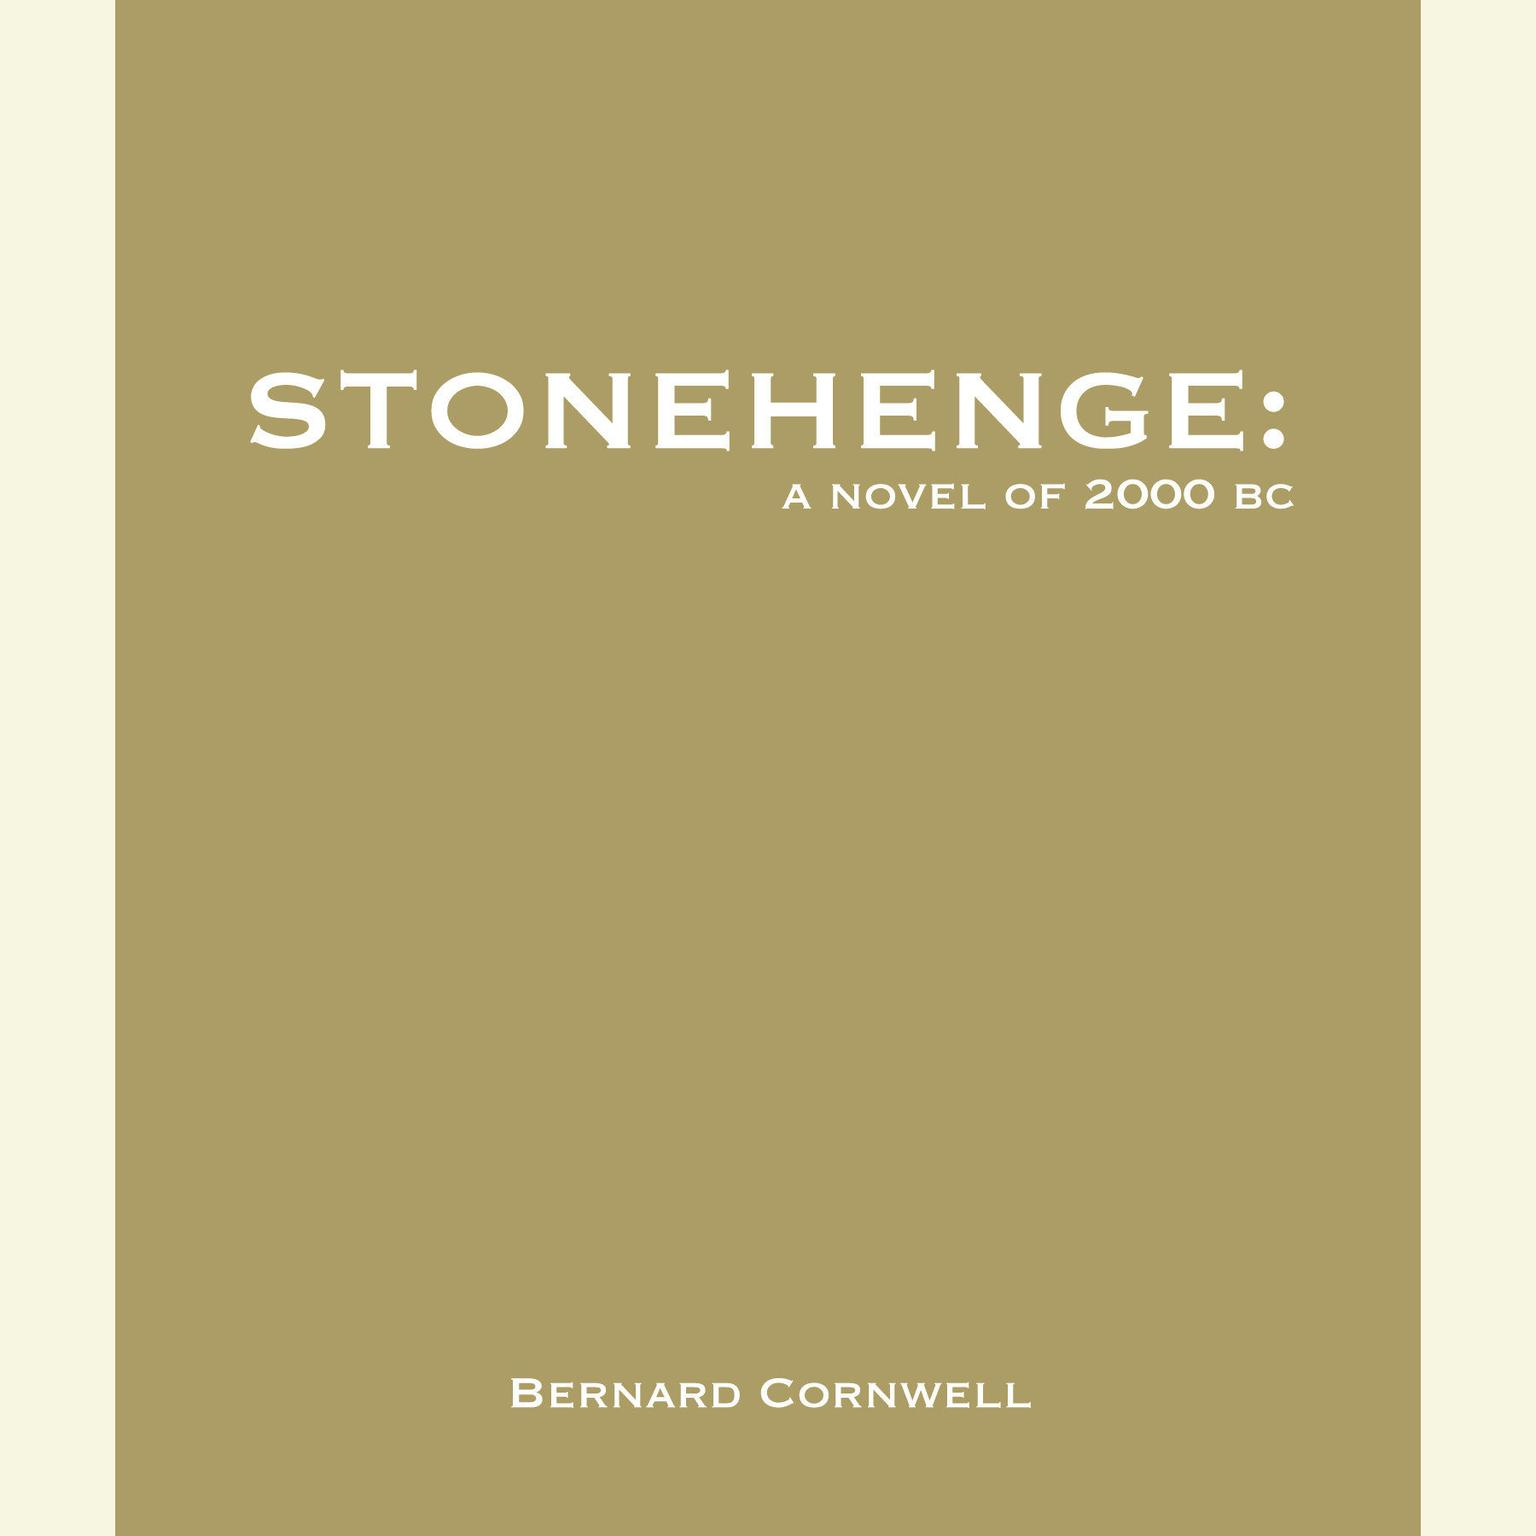 Printable Stonehenge: A Novel of 2000 BC: A Novel of 2000 BC Audiobook Cover Art